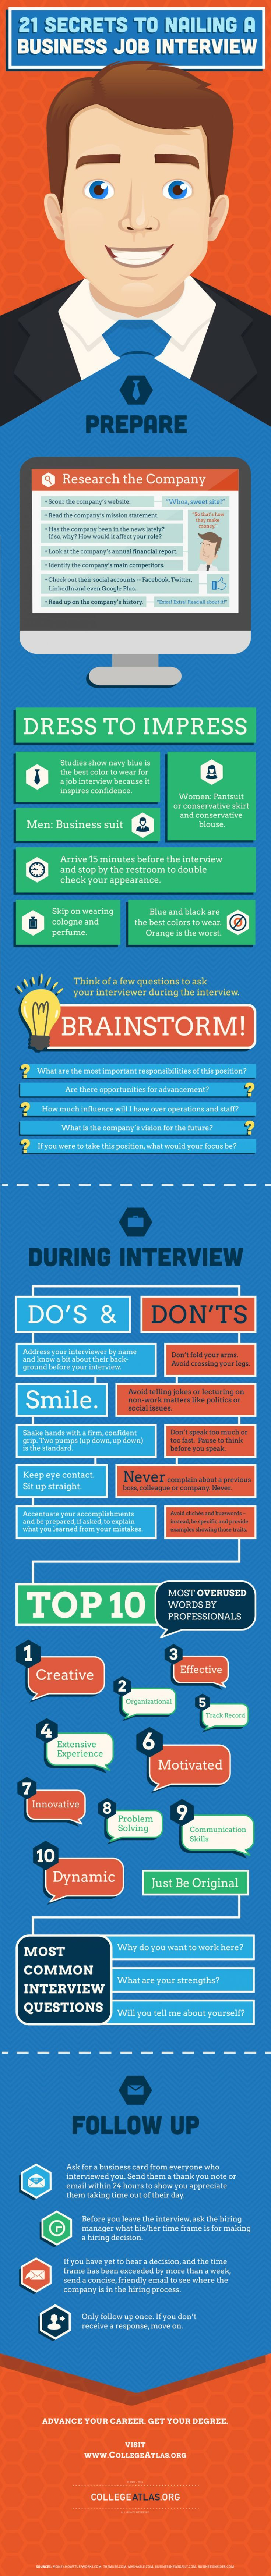 1000 images about interviewing tips 21 secrets to nailing your next interview veredus